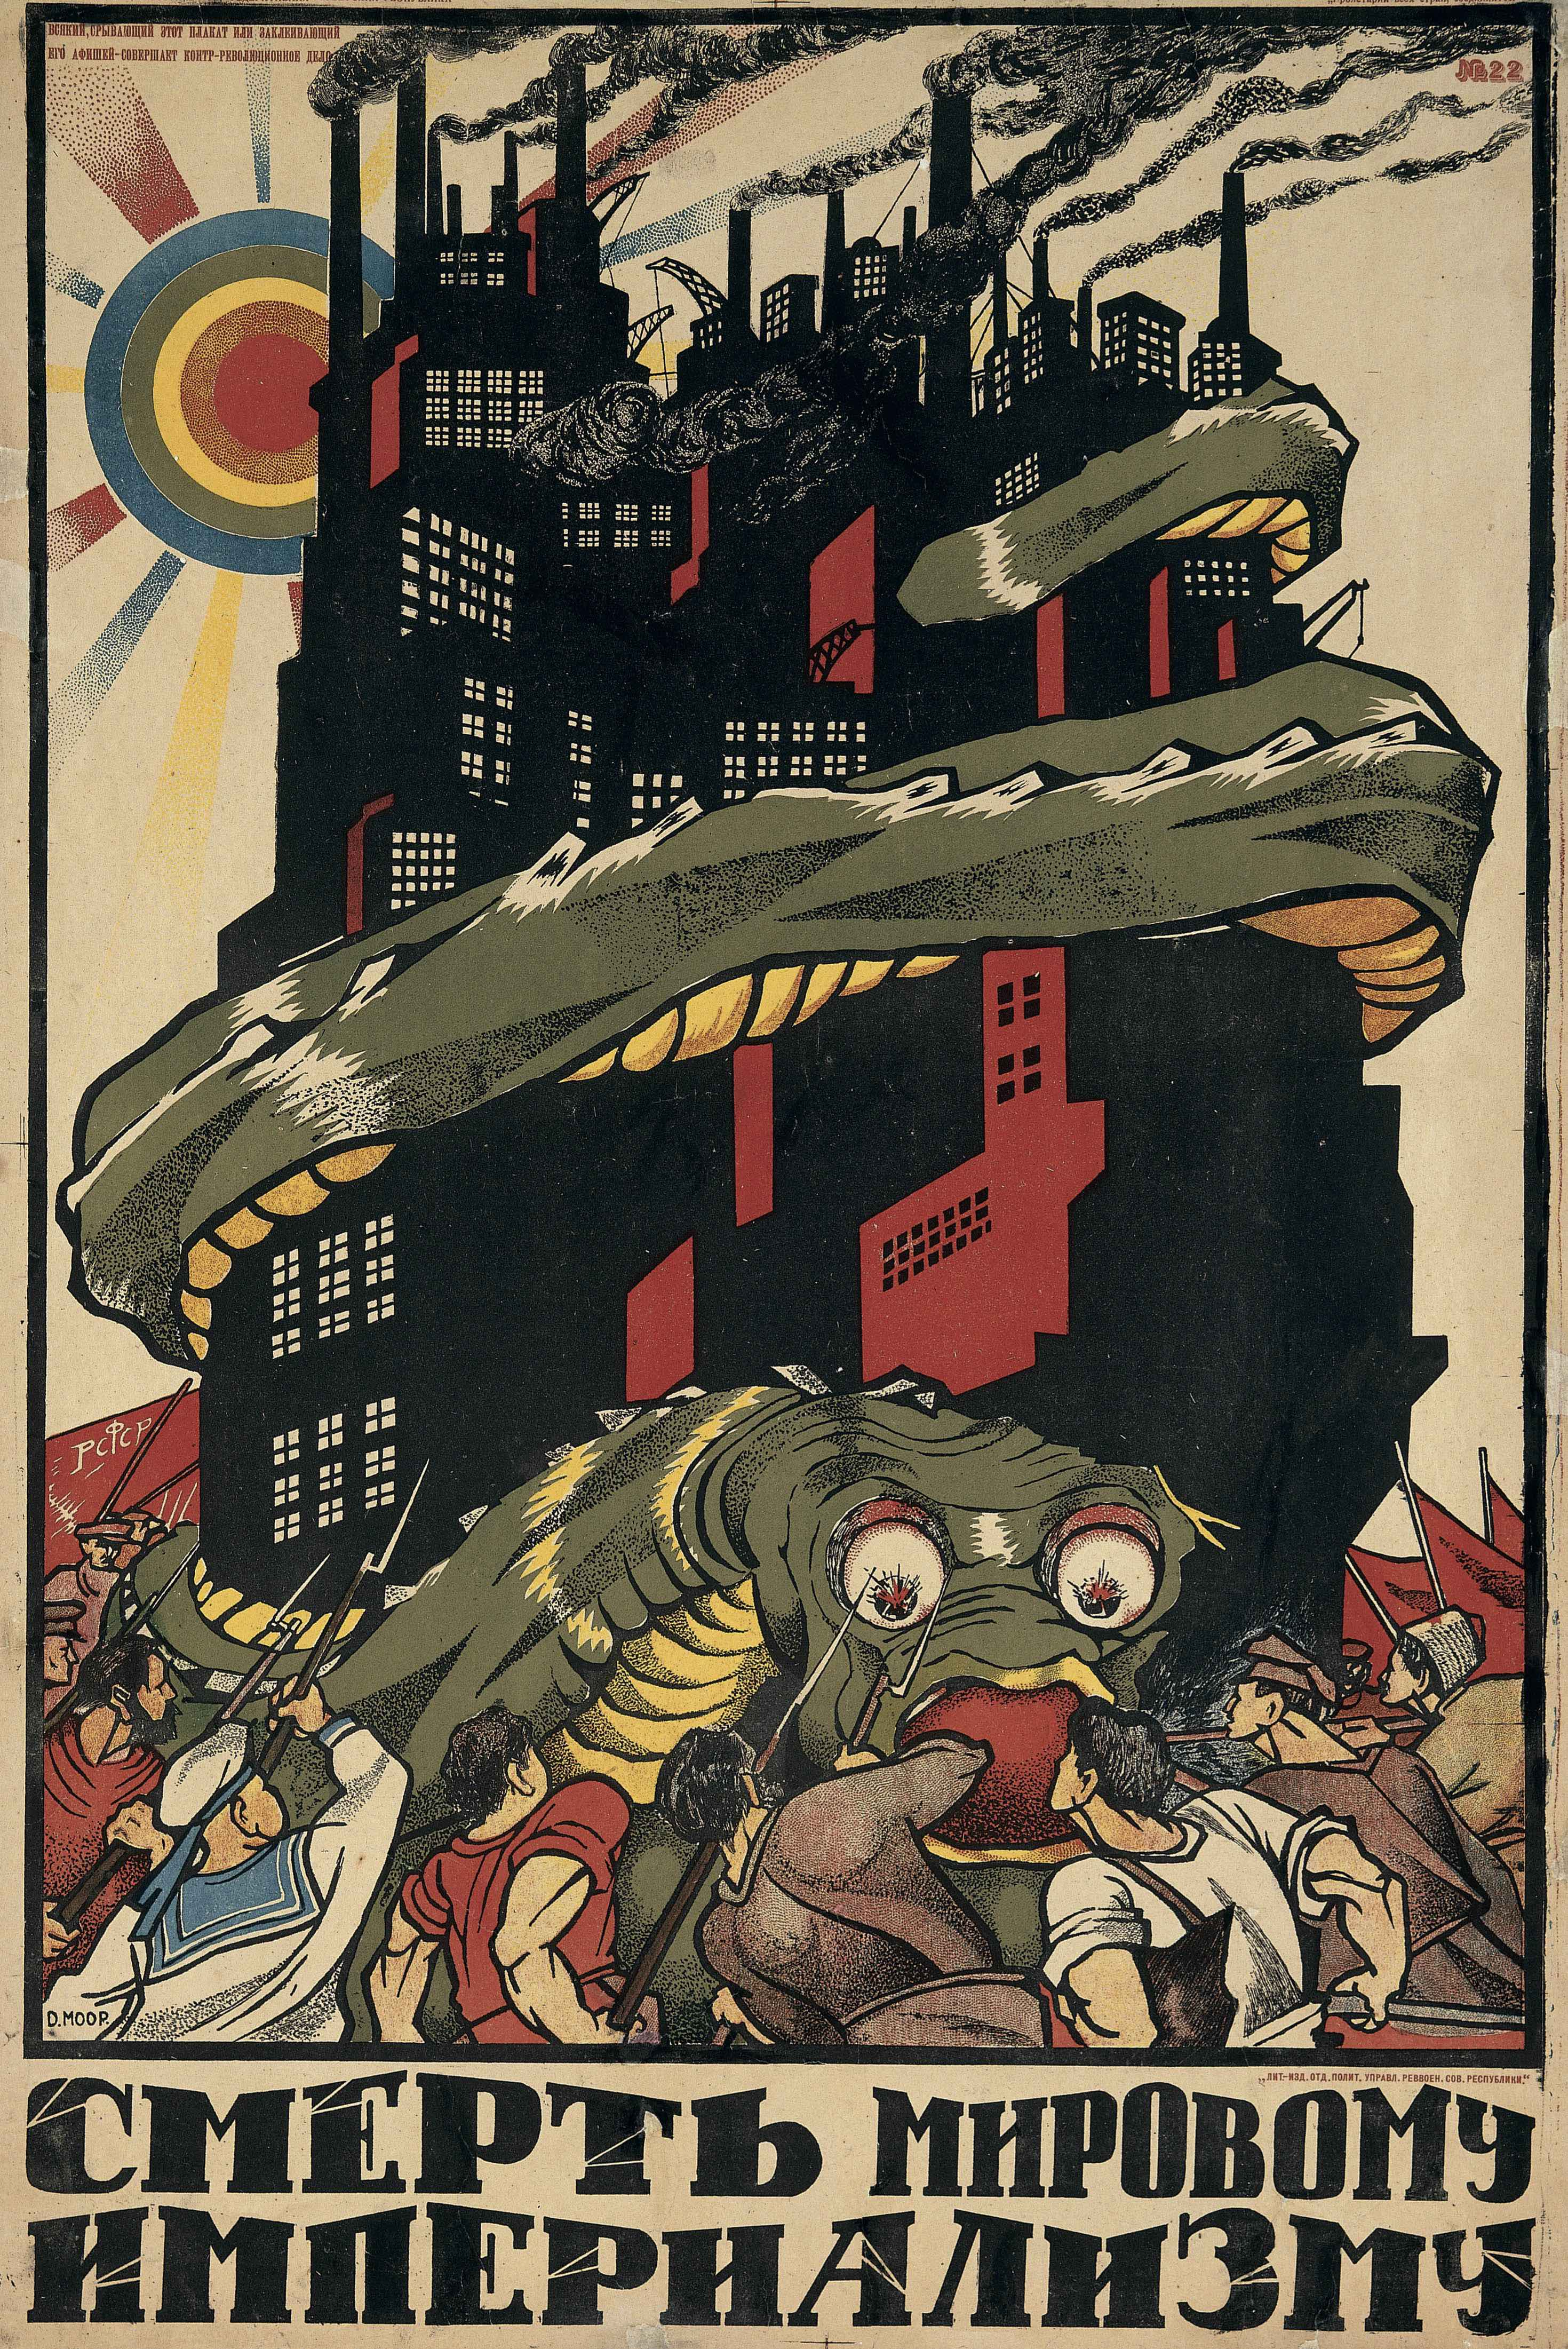 Death to World Imperialism, Dmitrii Moor, 1920. Purchased 2016. The David King Collection at Tate